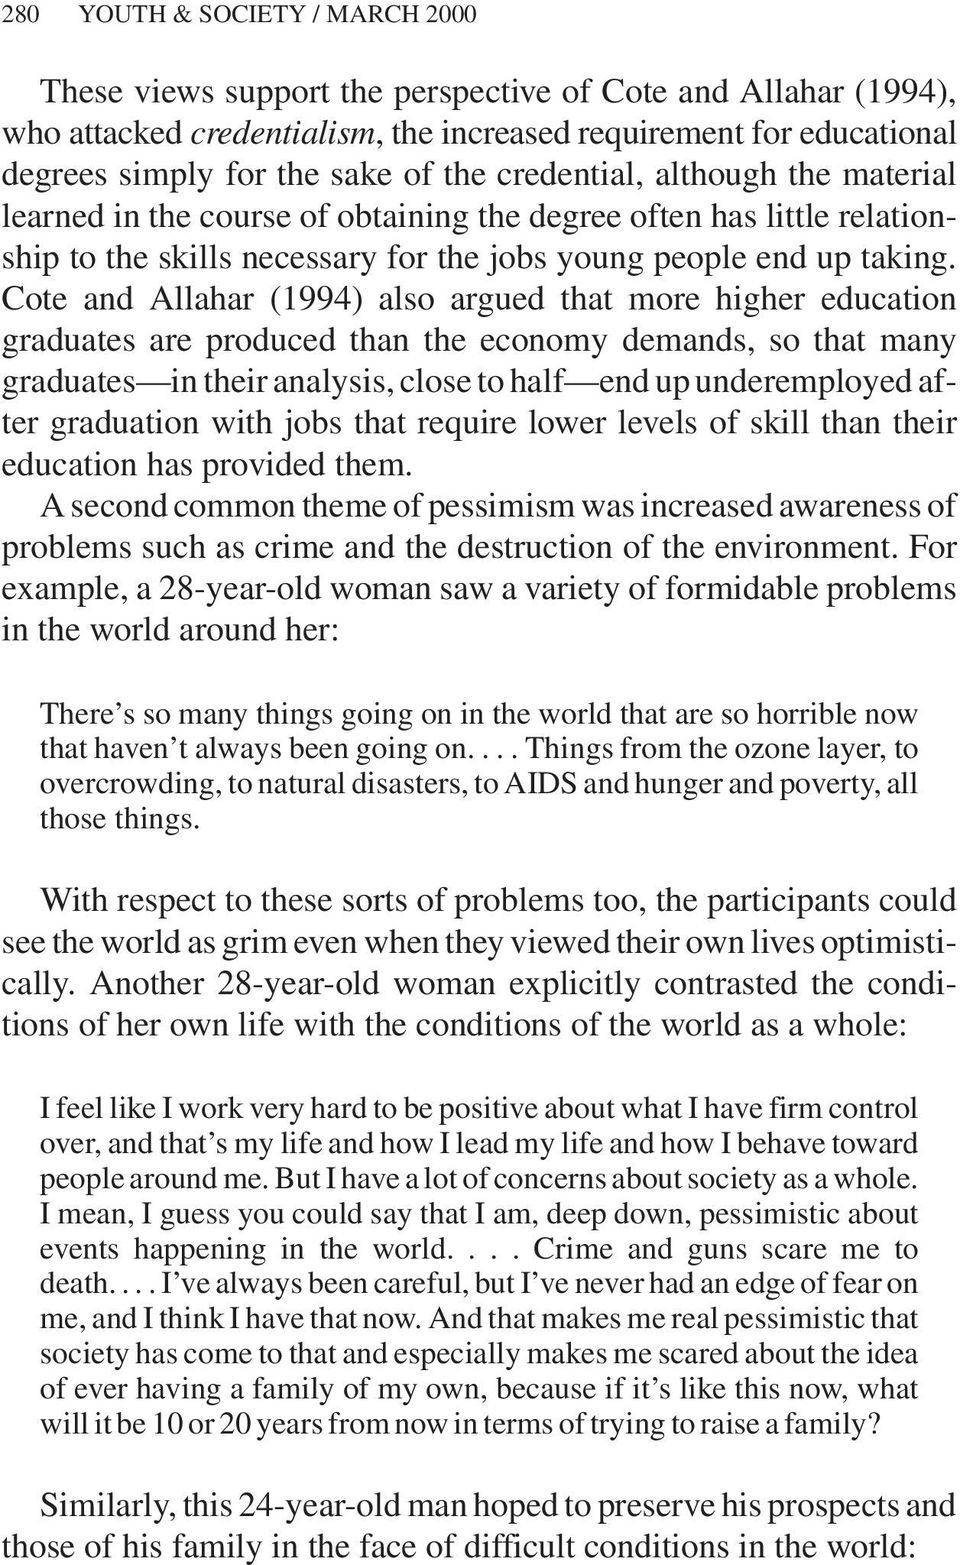 Cote and Allahar (1994) also argued that more higher education graduates are produced than the economy demands, so that many graduates in their analysis, close to half end up underemployed after